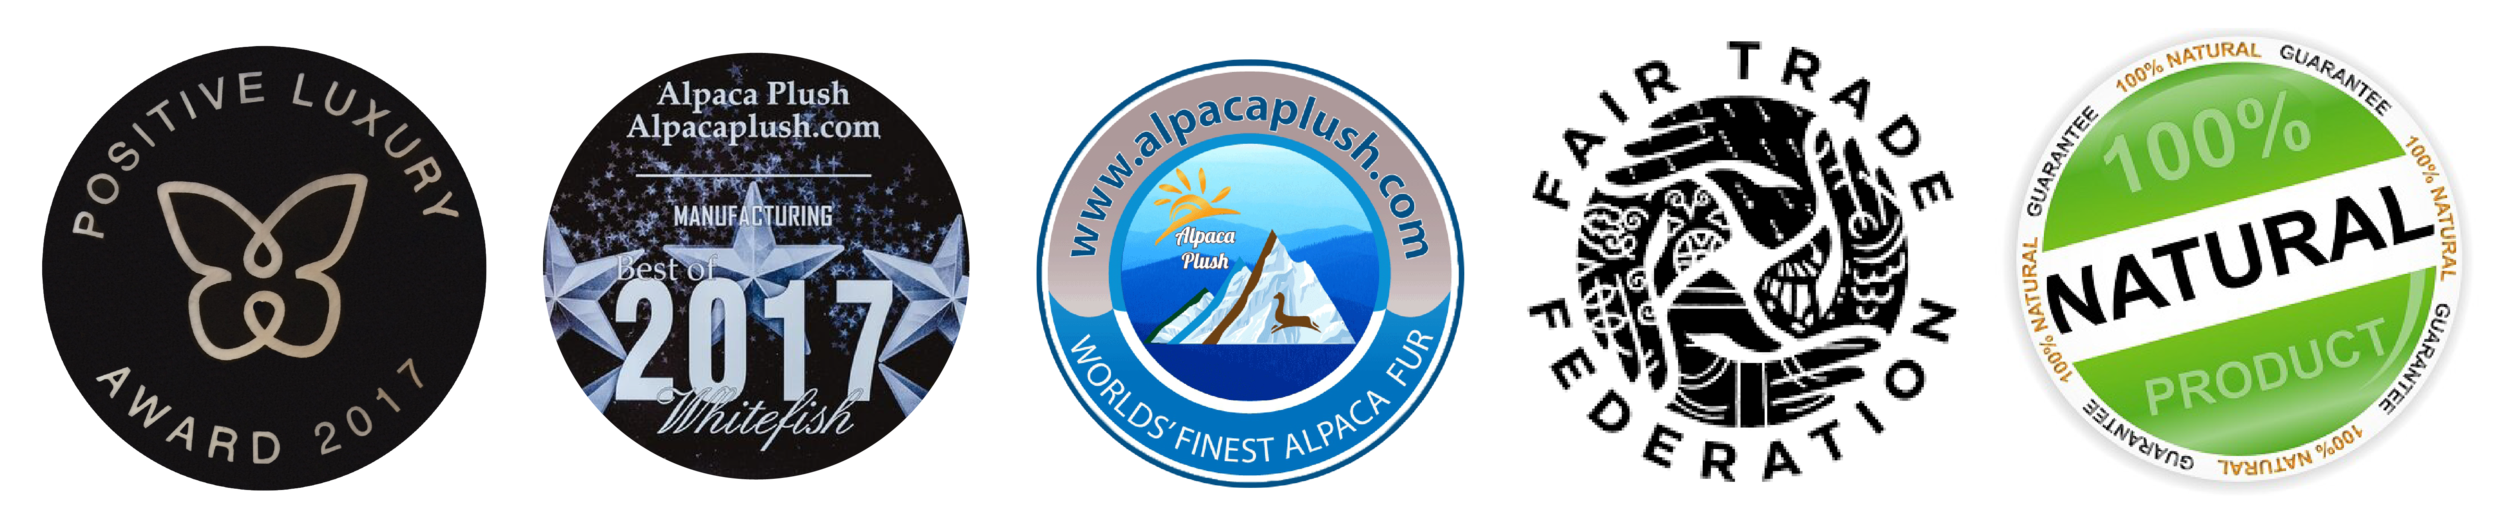 Alpaca Plush Awards and Badges-01.png